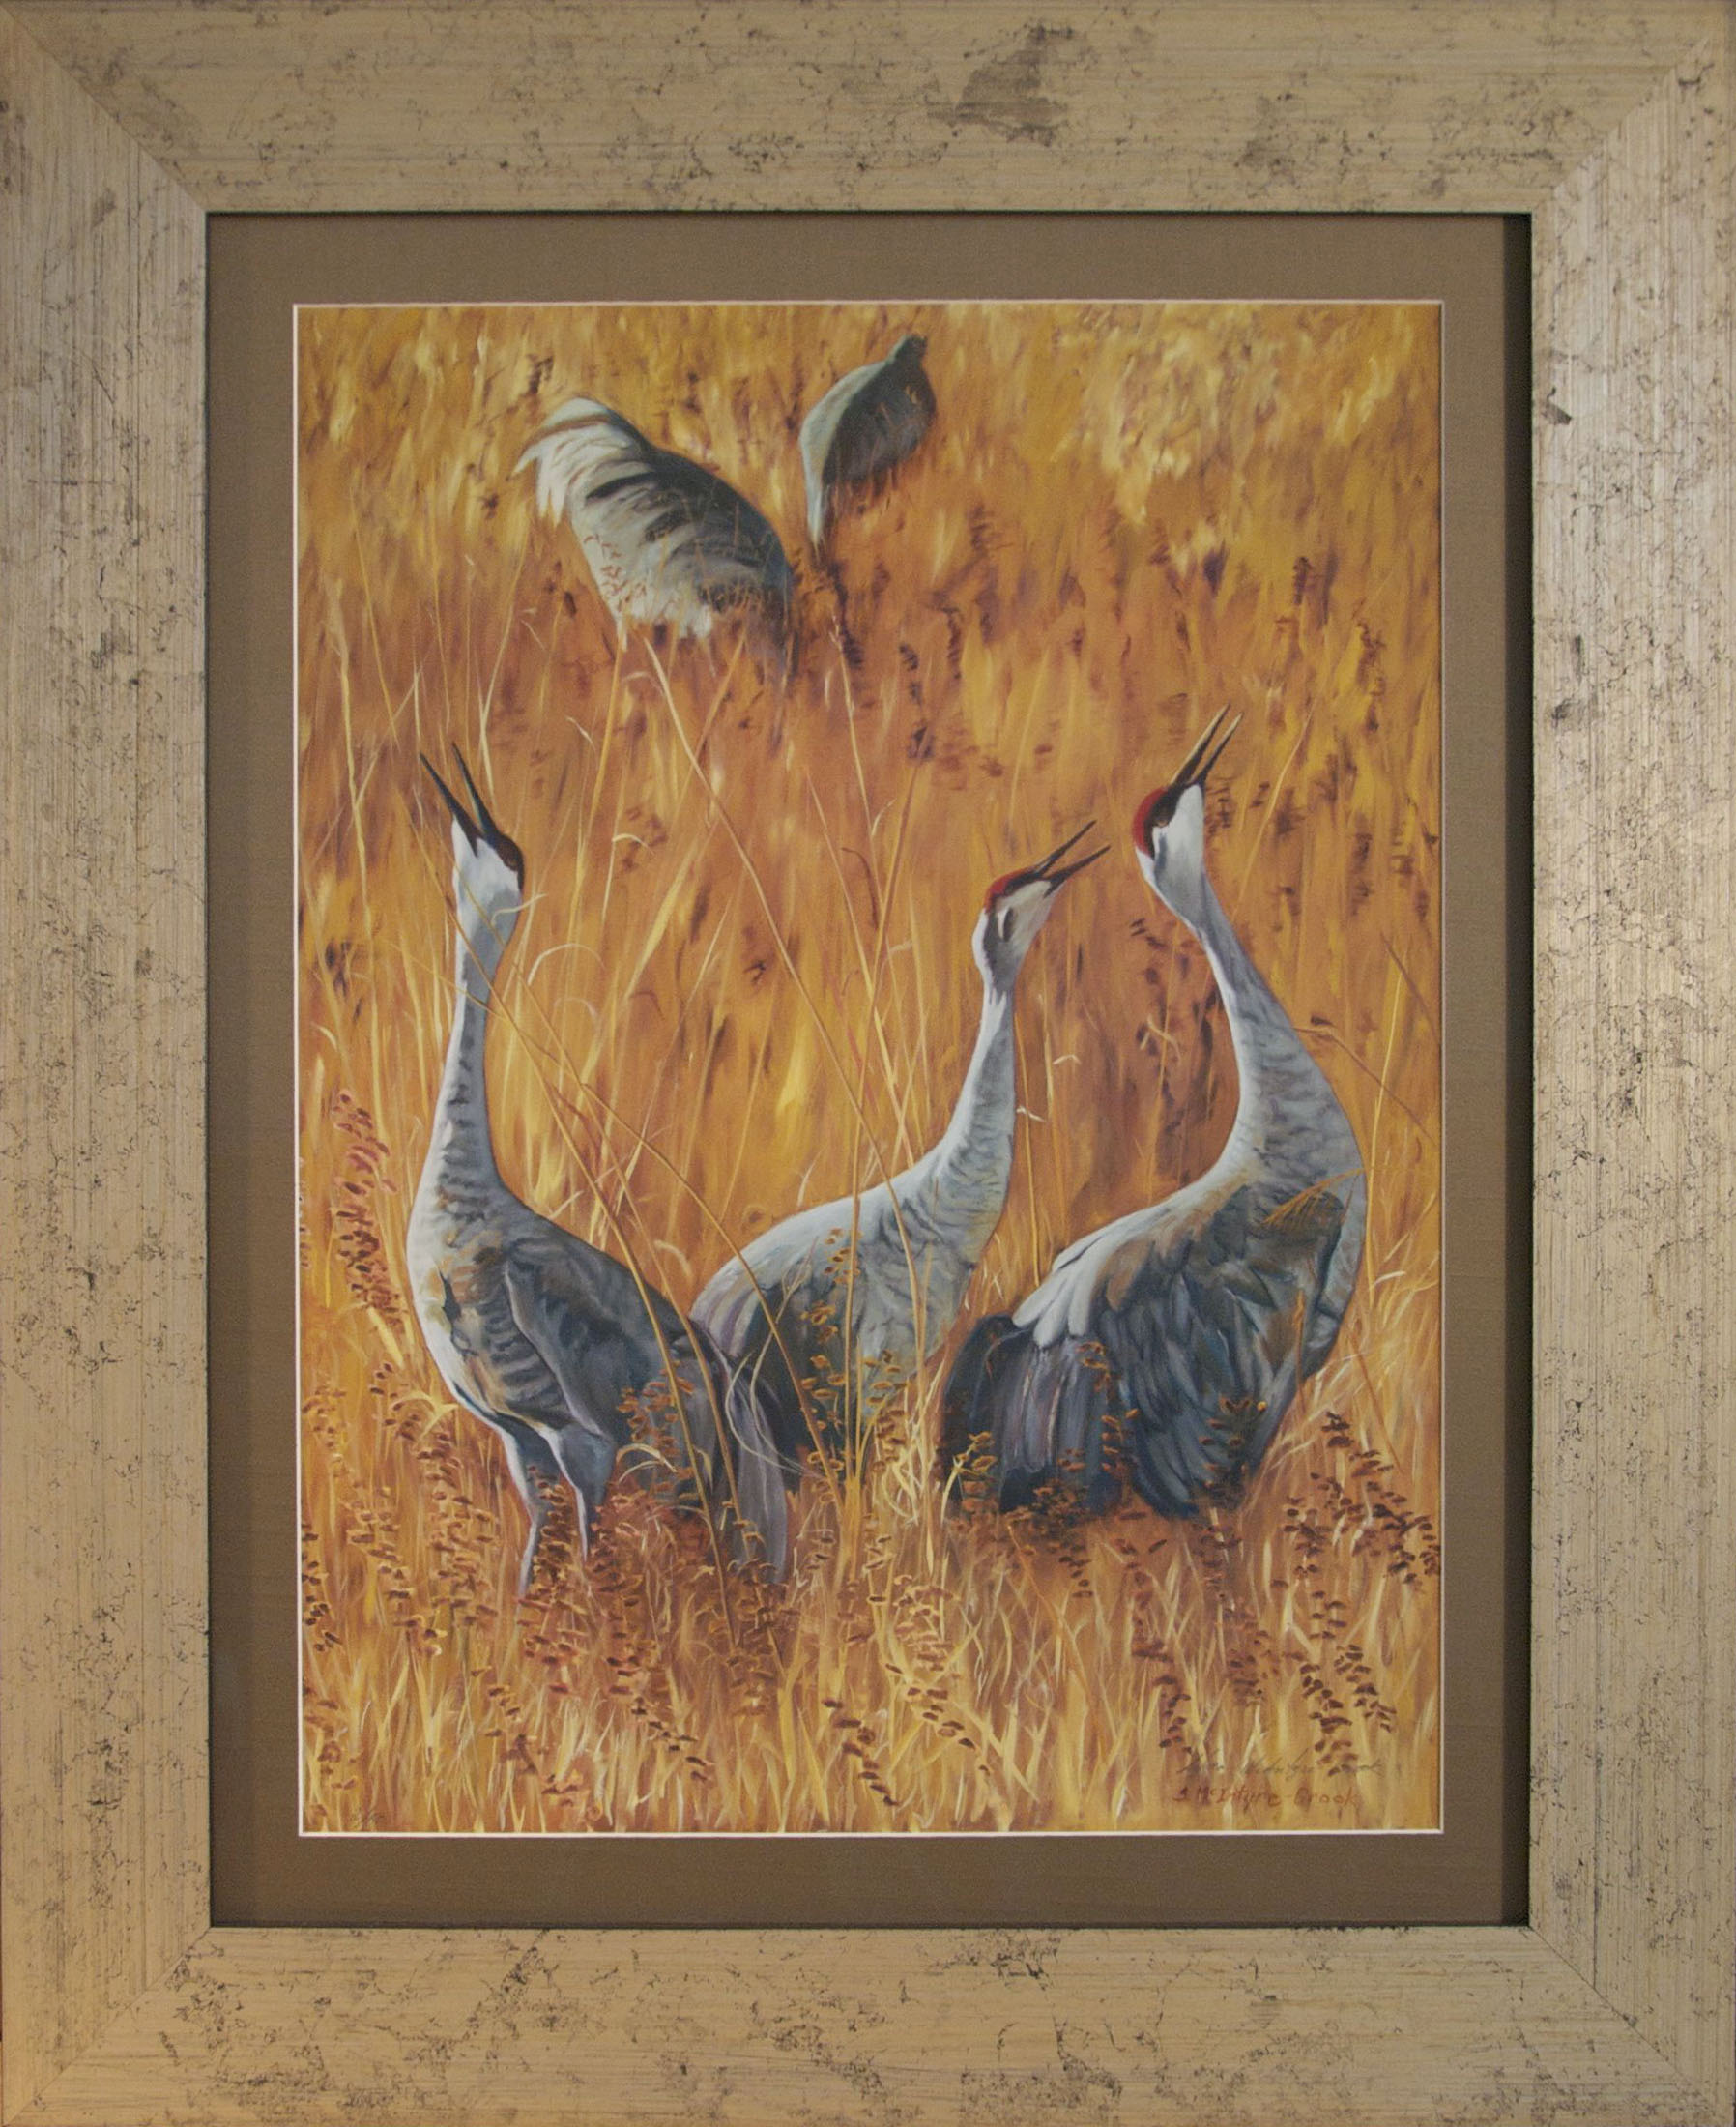 """Print: Sandhill Cranes Calling #5 of 50 limited edition  24"""" x 18"""" on frame: 29"""" x 34.5""""  Ultrachrome HDR ink; from original oil on canvass 'Sandhill Cranes Calling'; 48""""x 36""""  sold"""